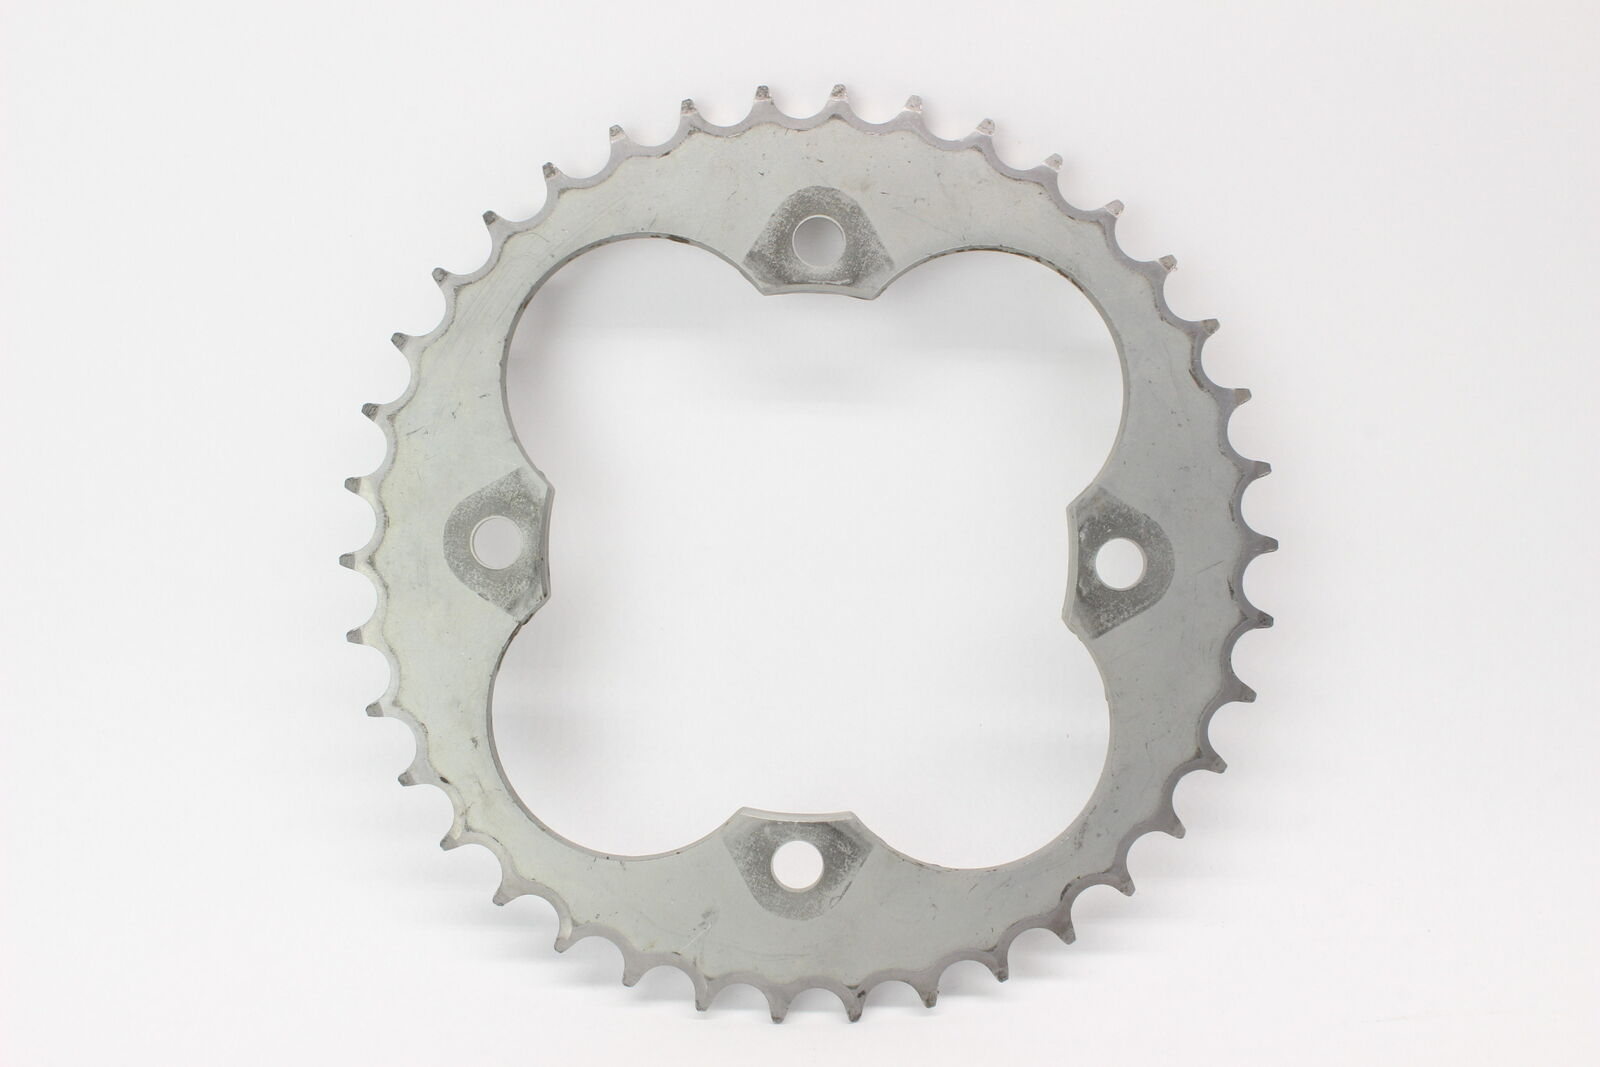 SUNSTAR 38T 38 TOOTH STEEL REAR SPROCKET HONDA TRX 450R TRX450R 2004 2005-2013